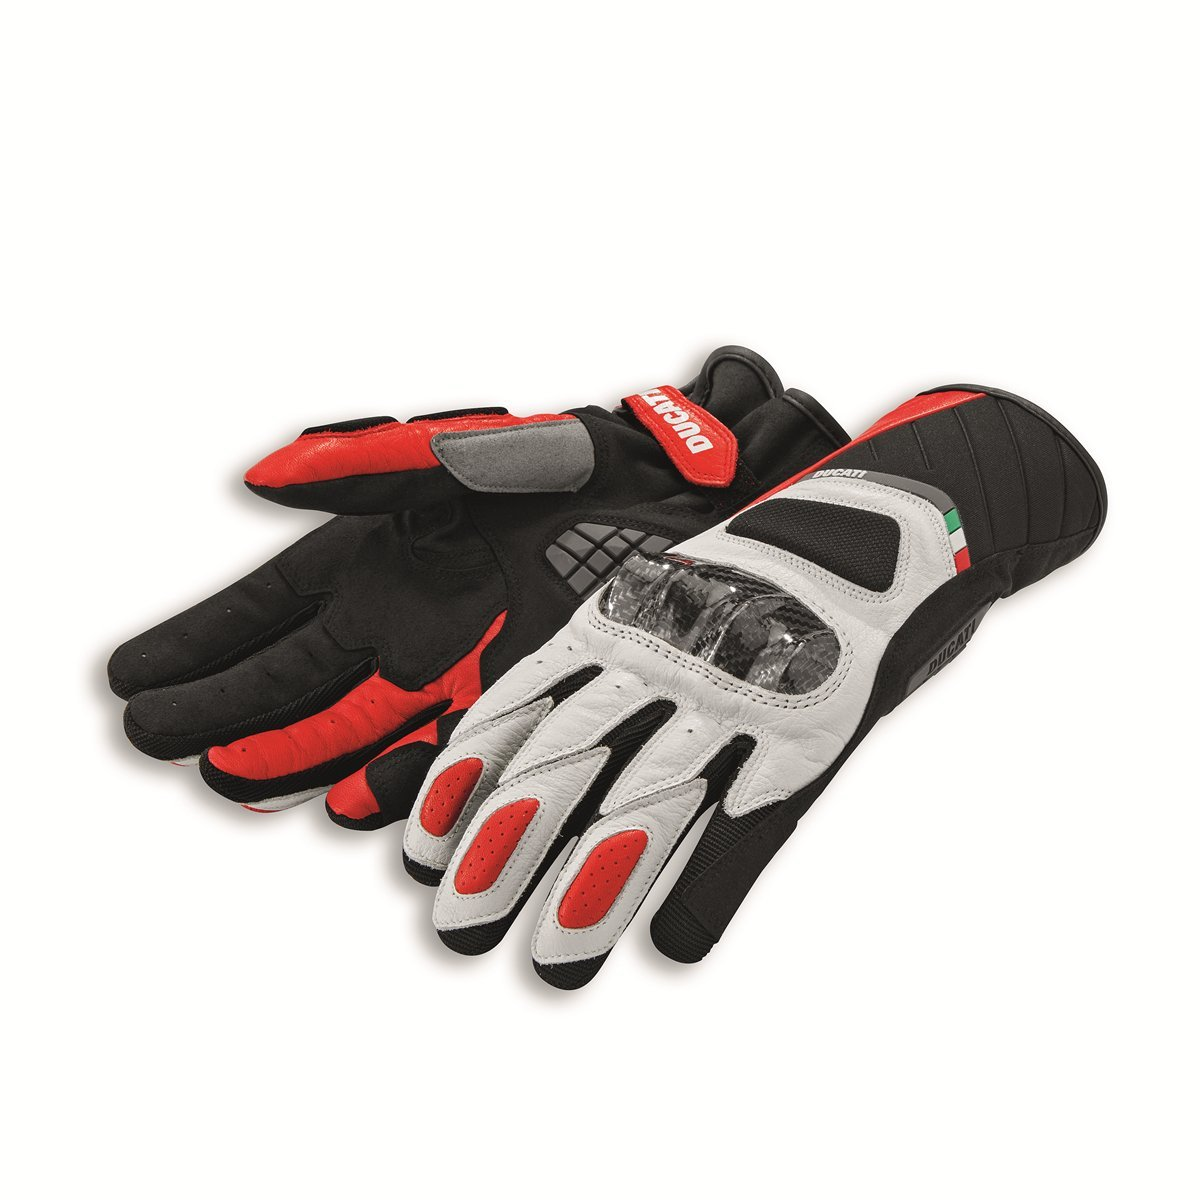 Ducati Sport C3 Leather-fabric gloves 9810370 (M, White/Black)